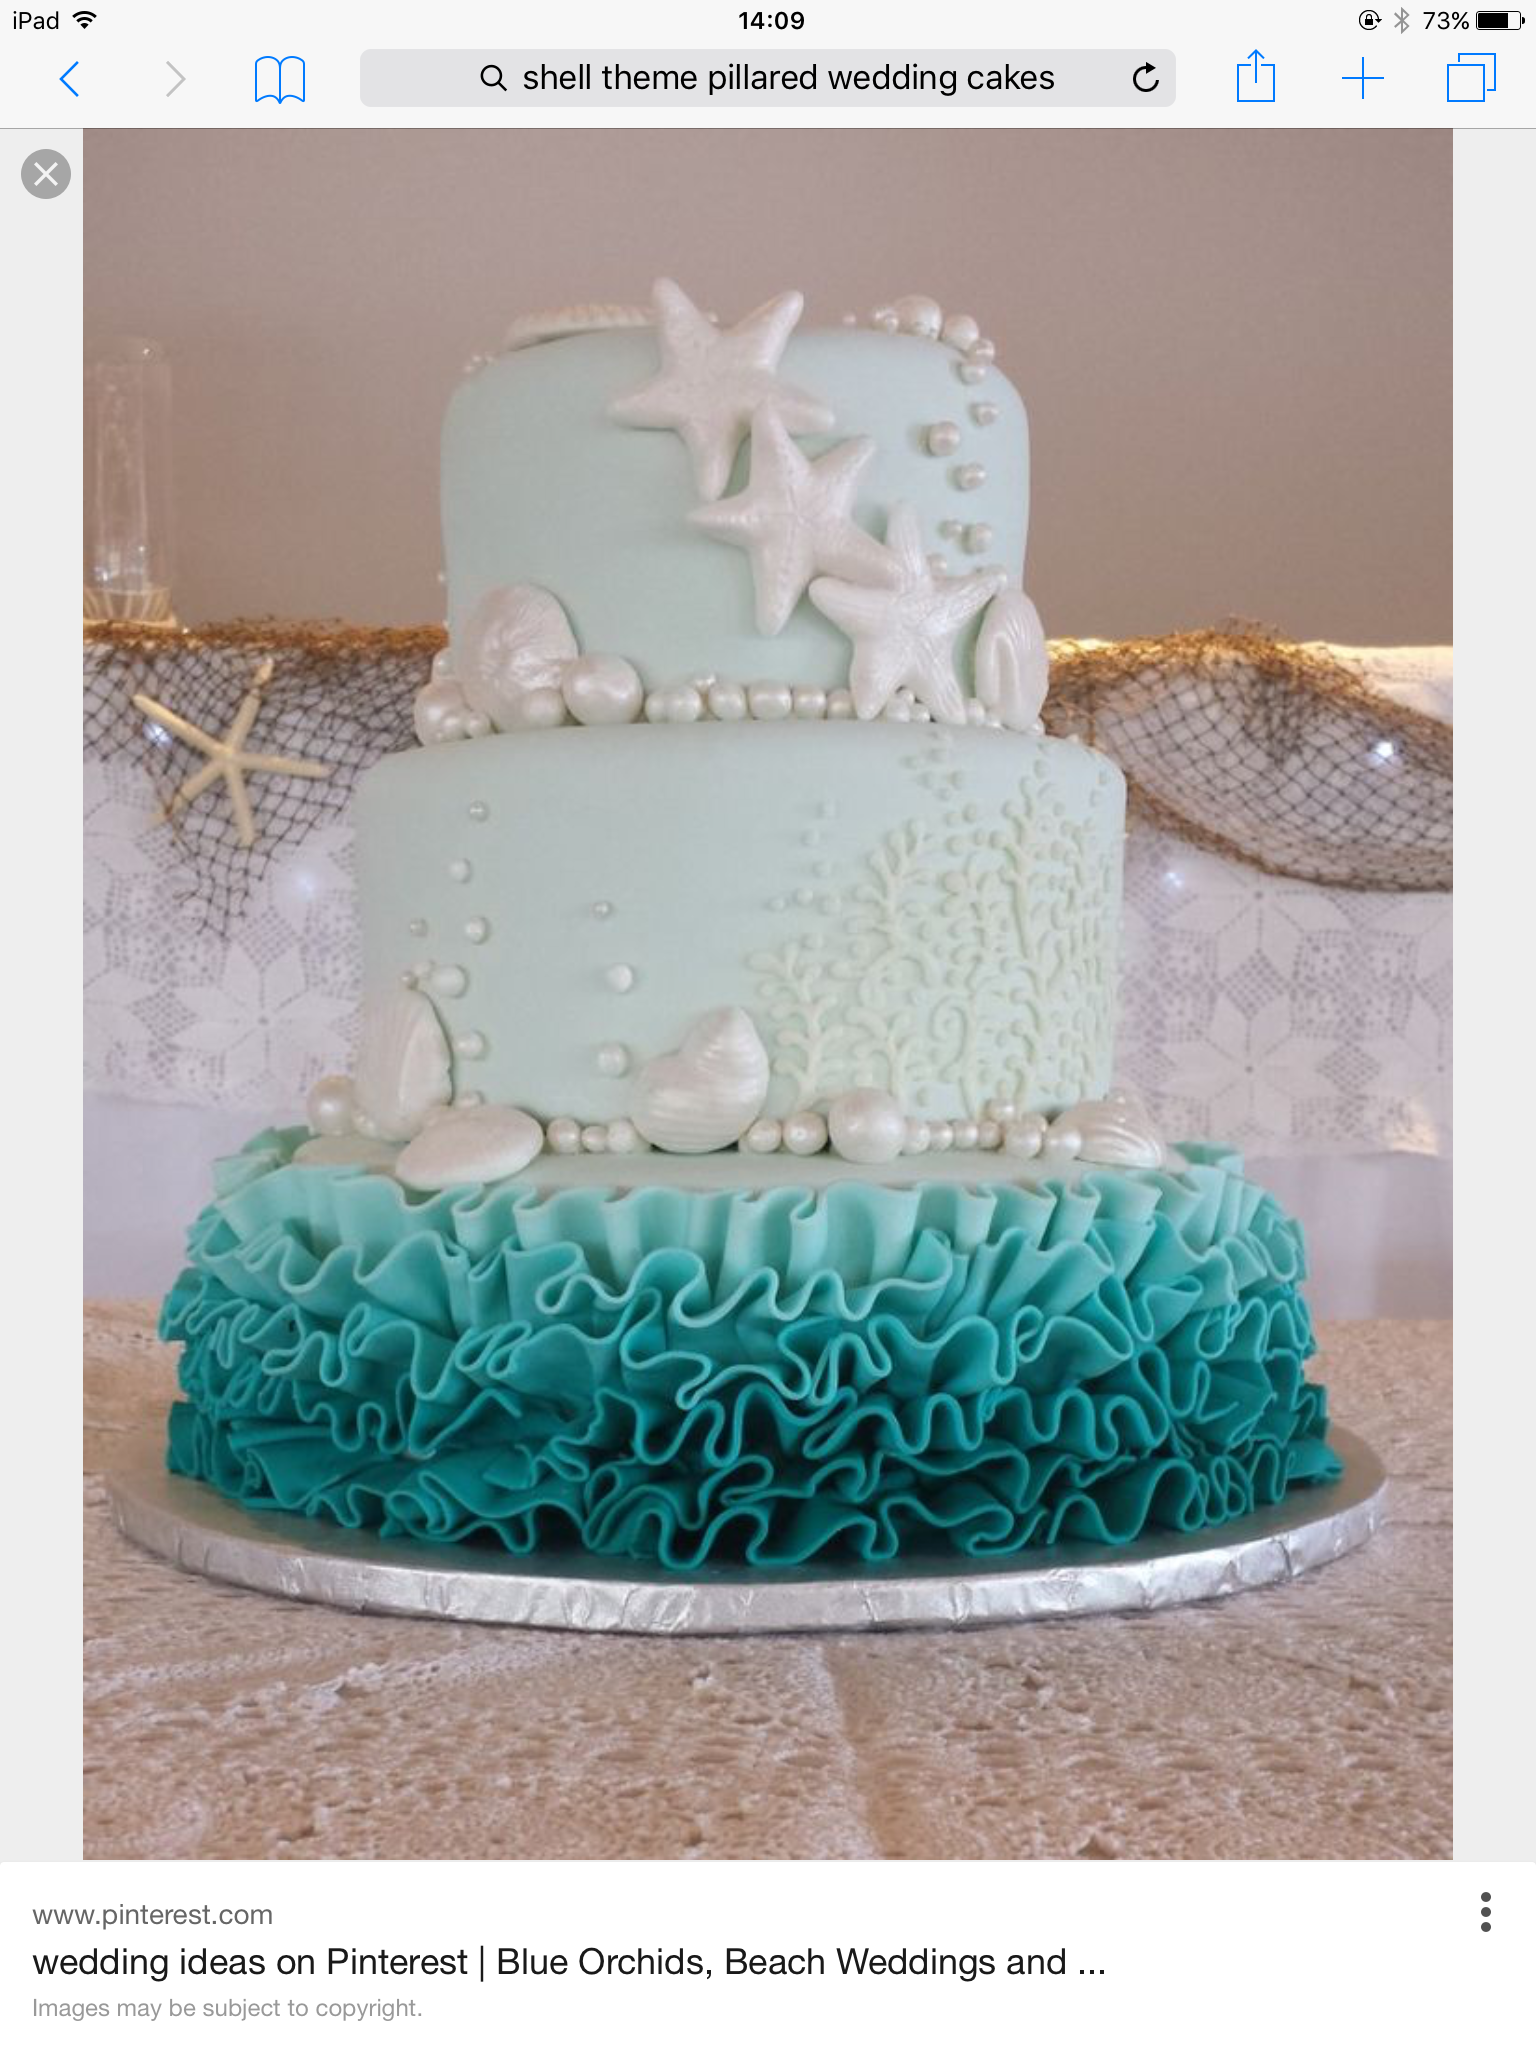 CAKE using pearls icing rolled in iridescent powder to look